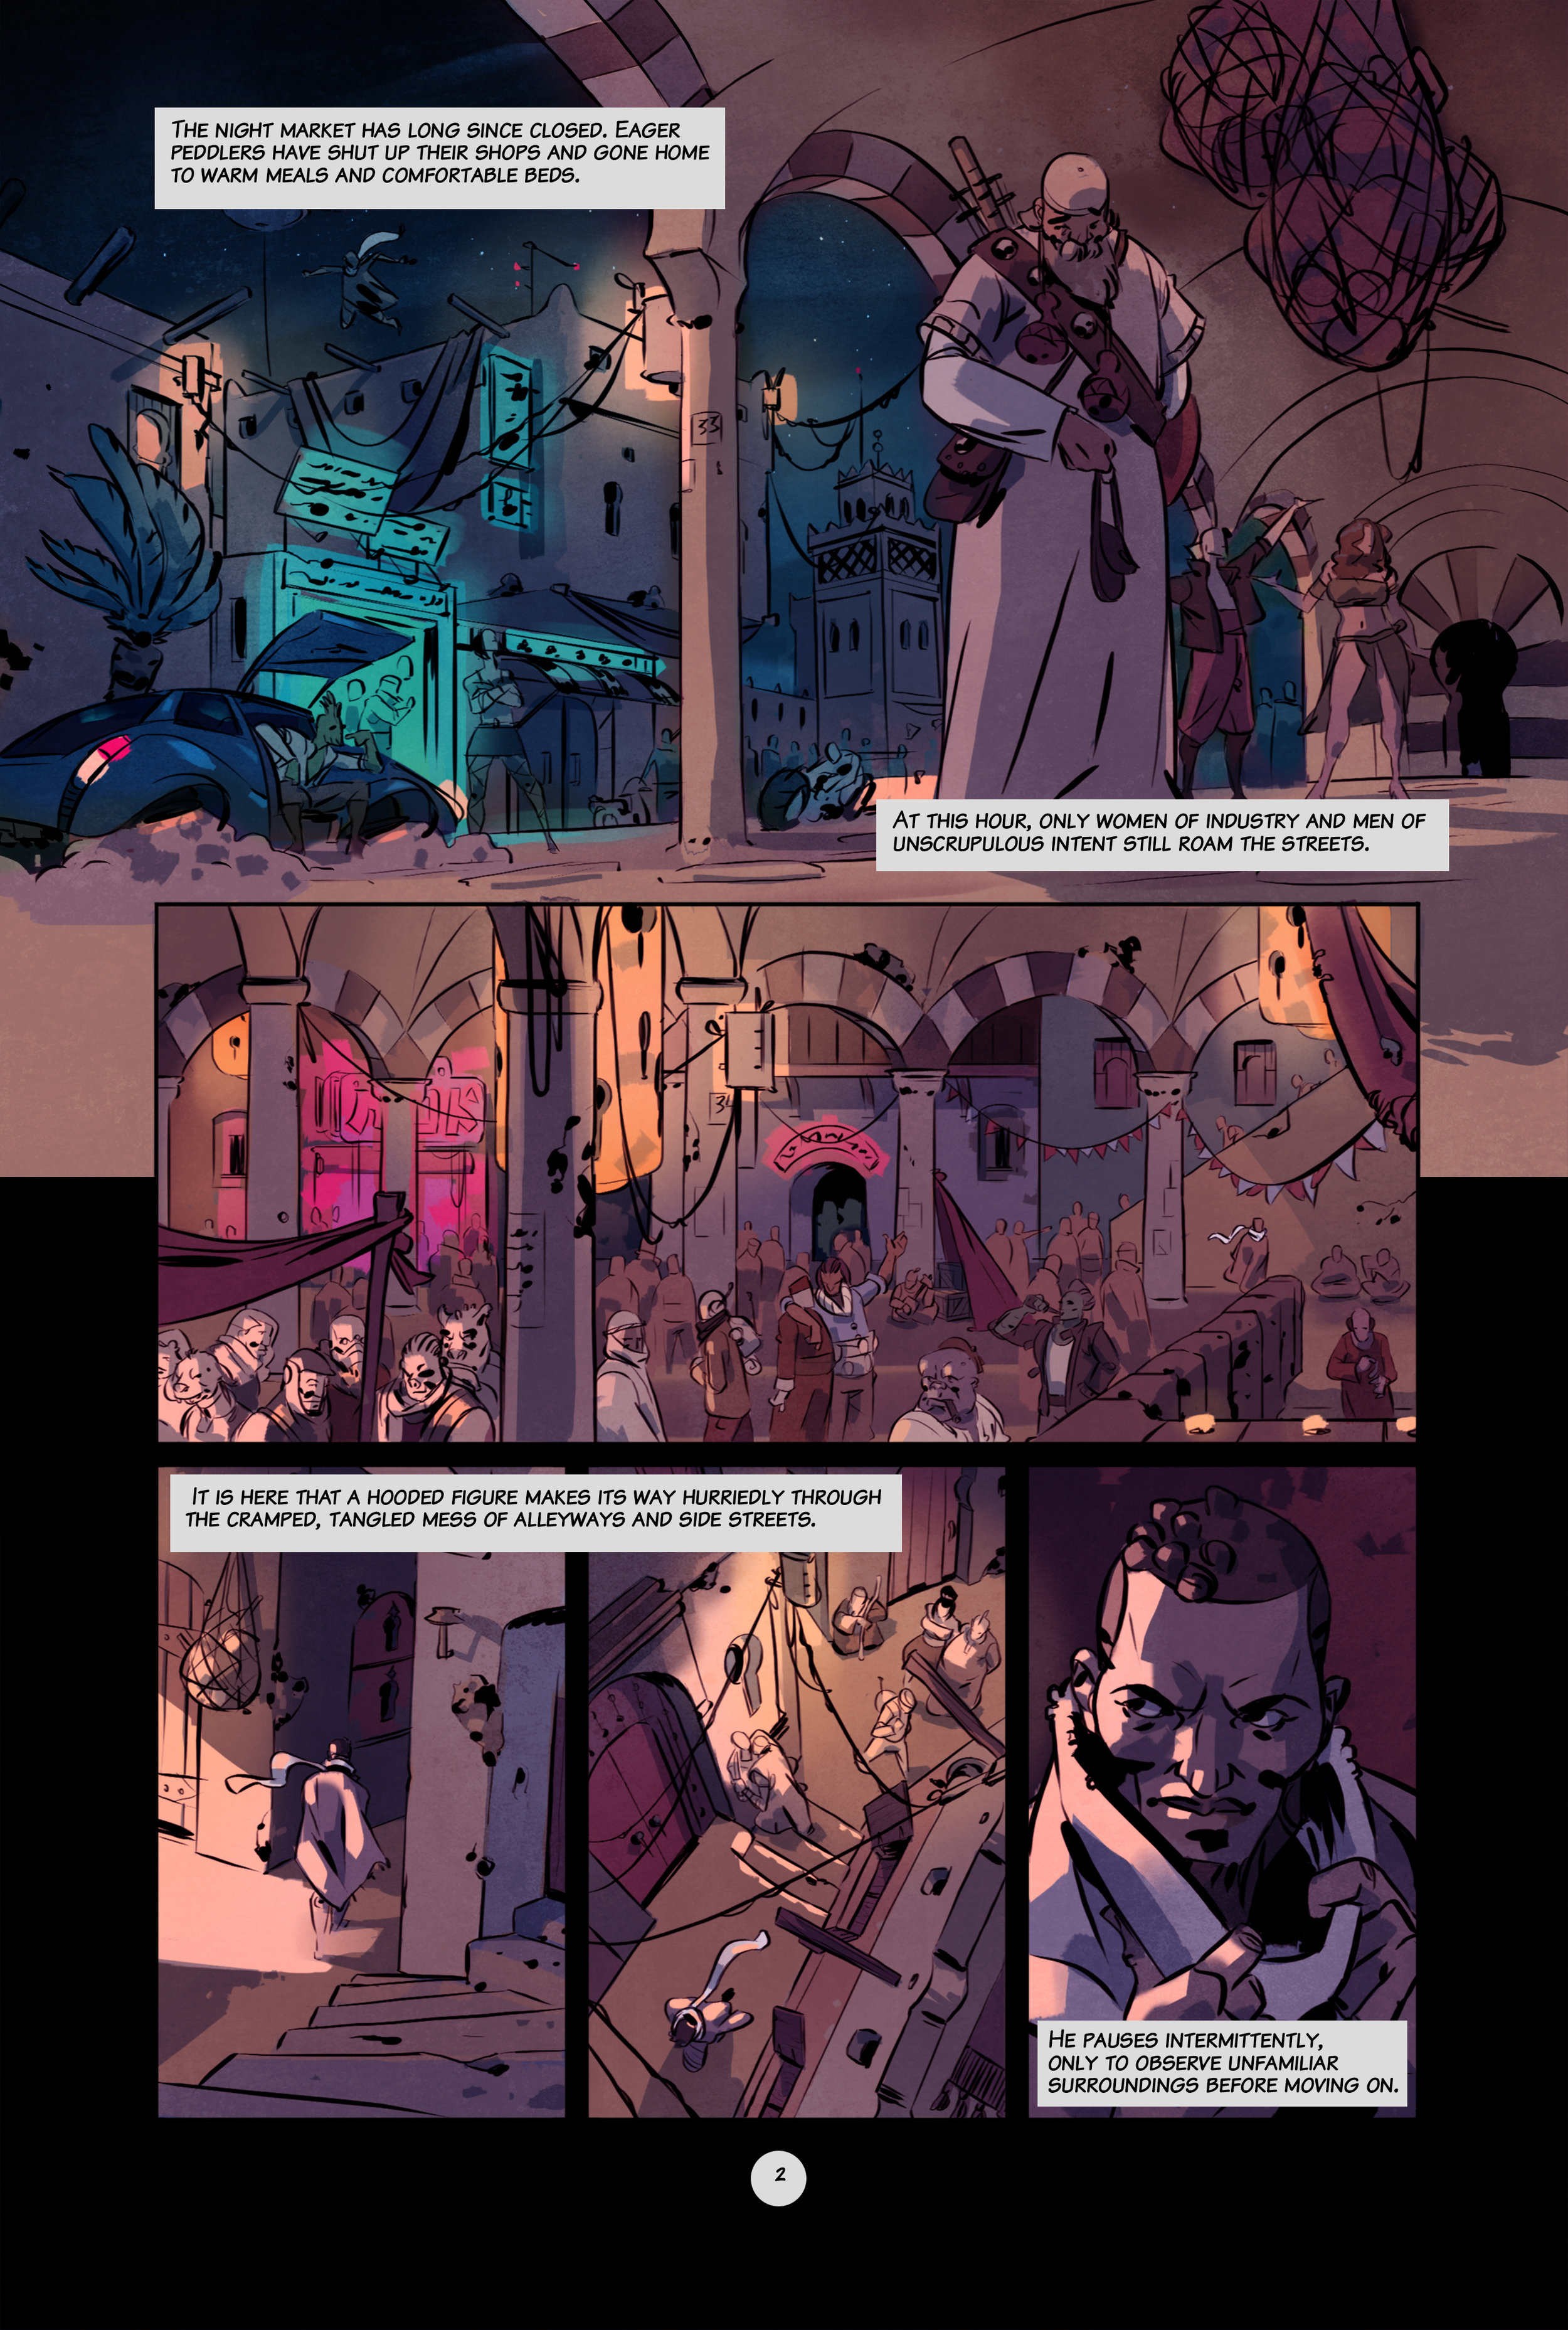 Outcasts_Of_Jupiter_Page02_Color_VeryHi.jpg